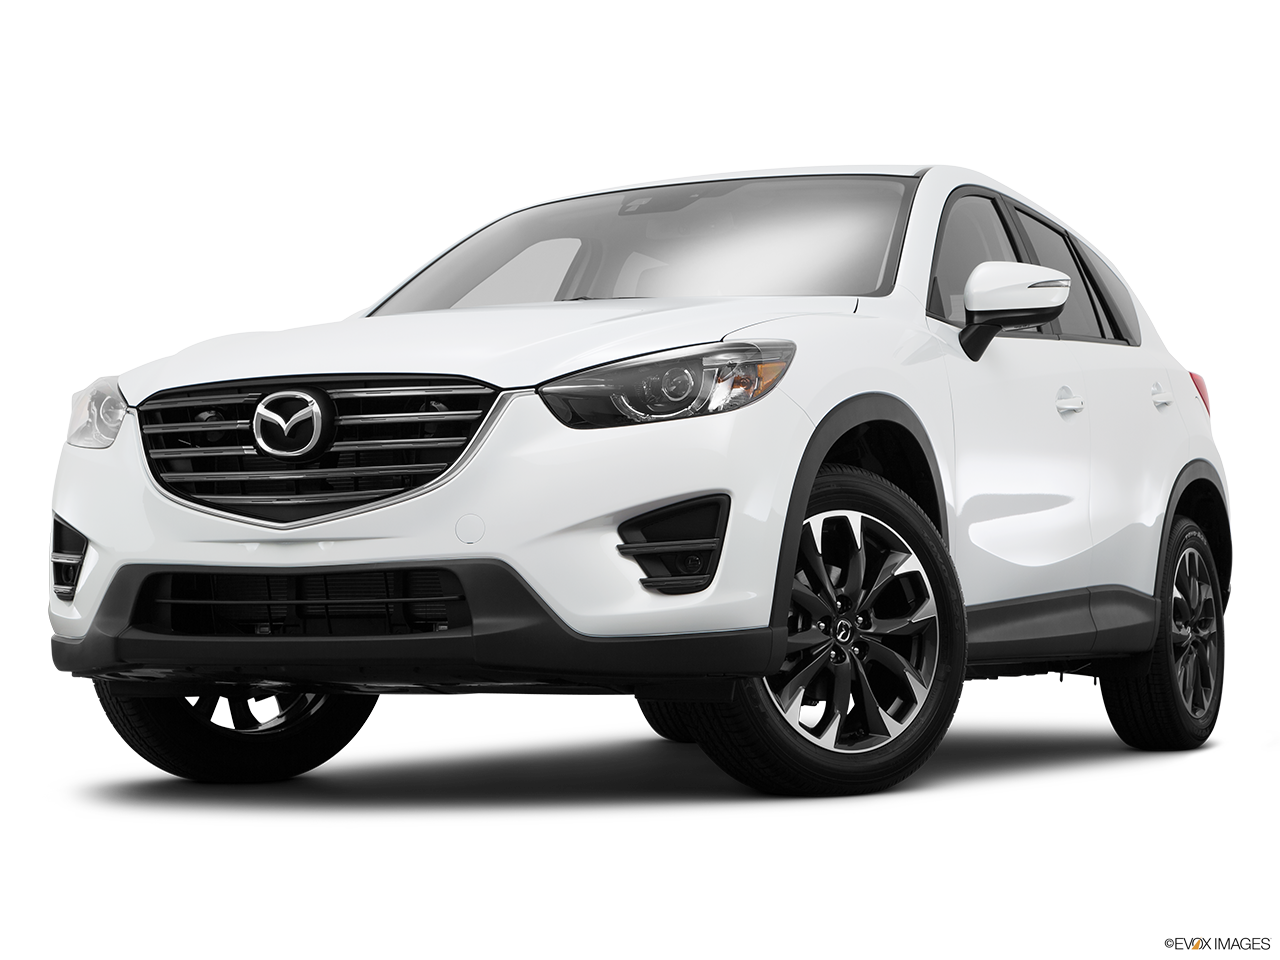 Spec Mazda Cx 5 Ide Dimage De Voiture 2015 Wiring Diagram Compare The 2016 Vs Nissan Rogue Romano